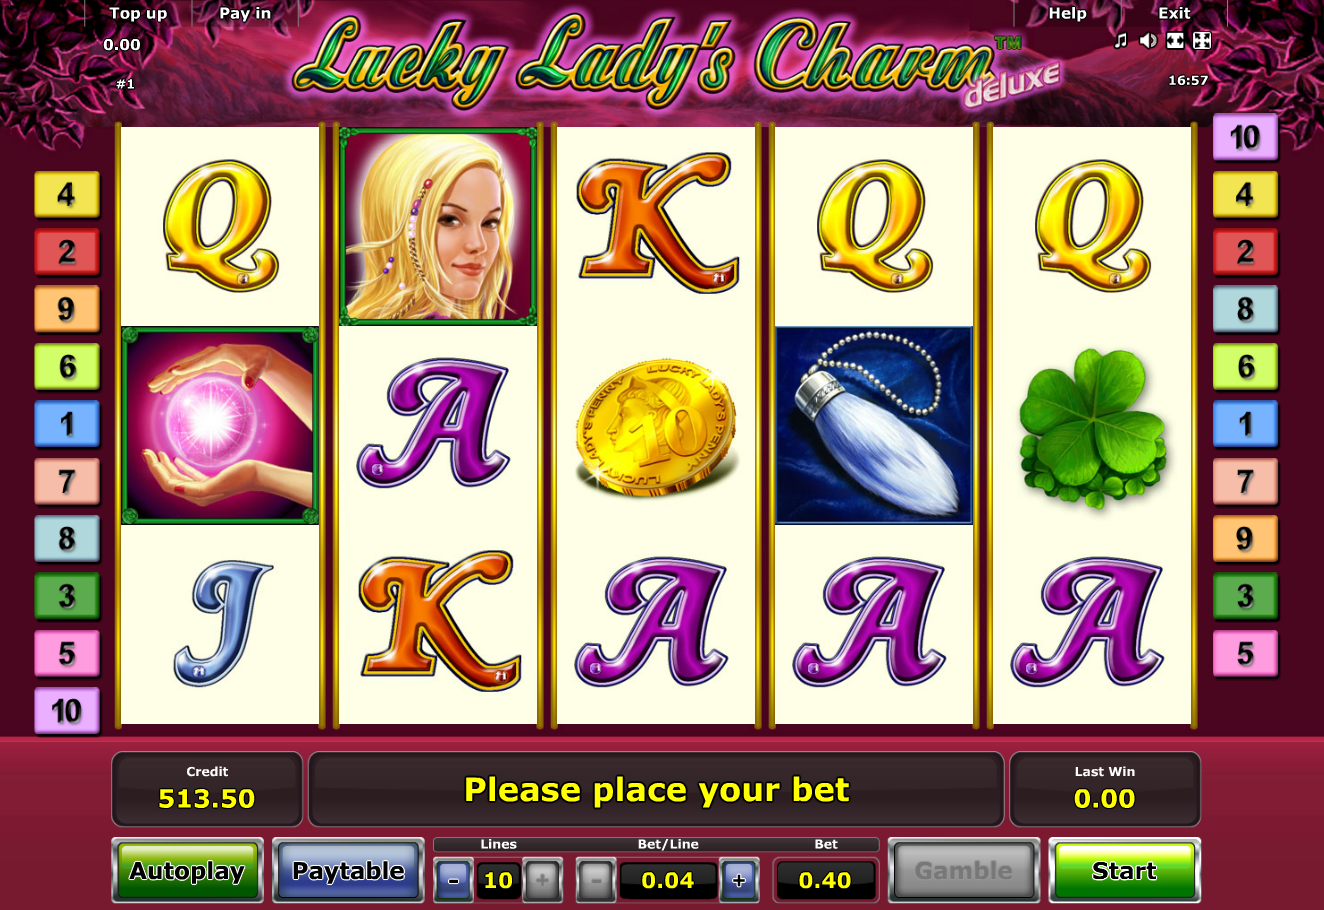 no deposit sign up bonus online casino lucky ladys charm tricks